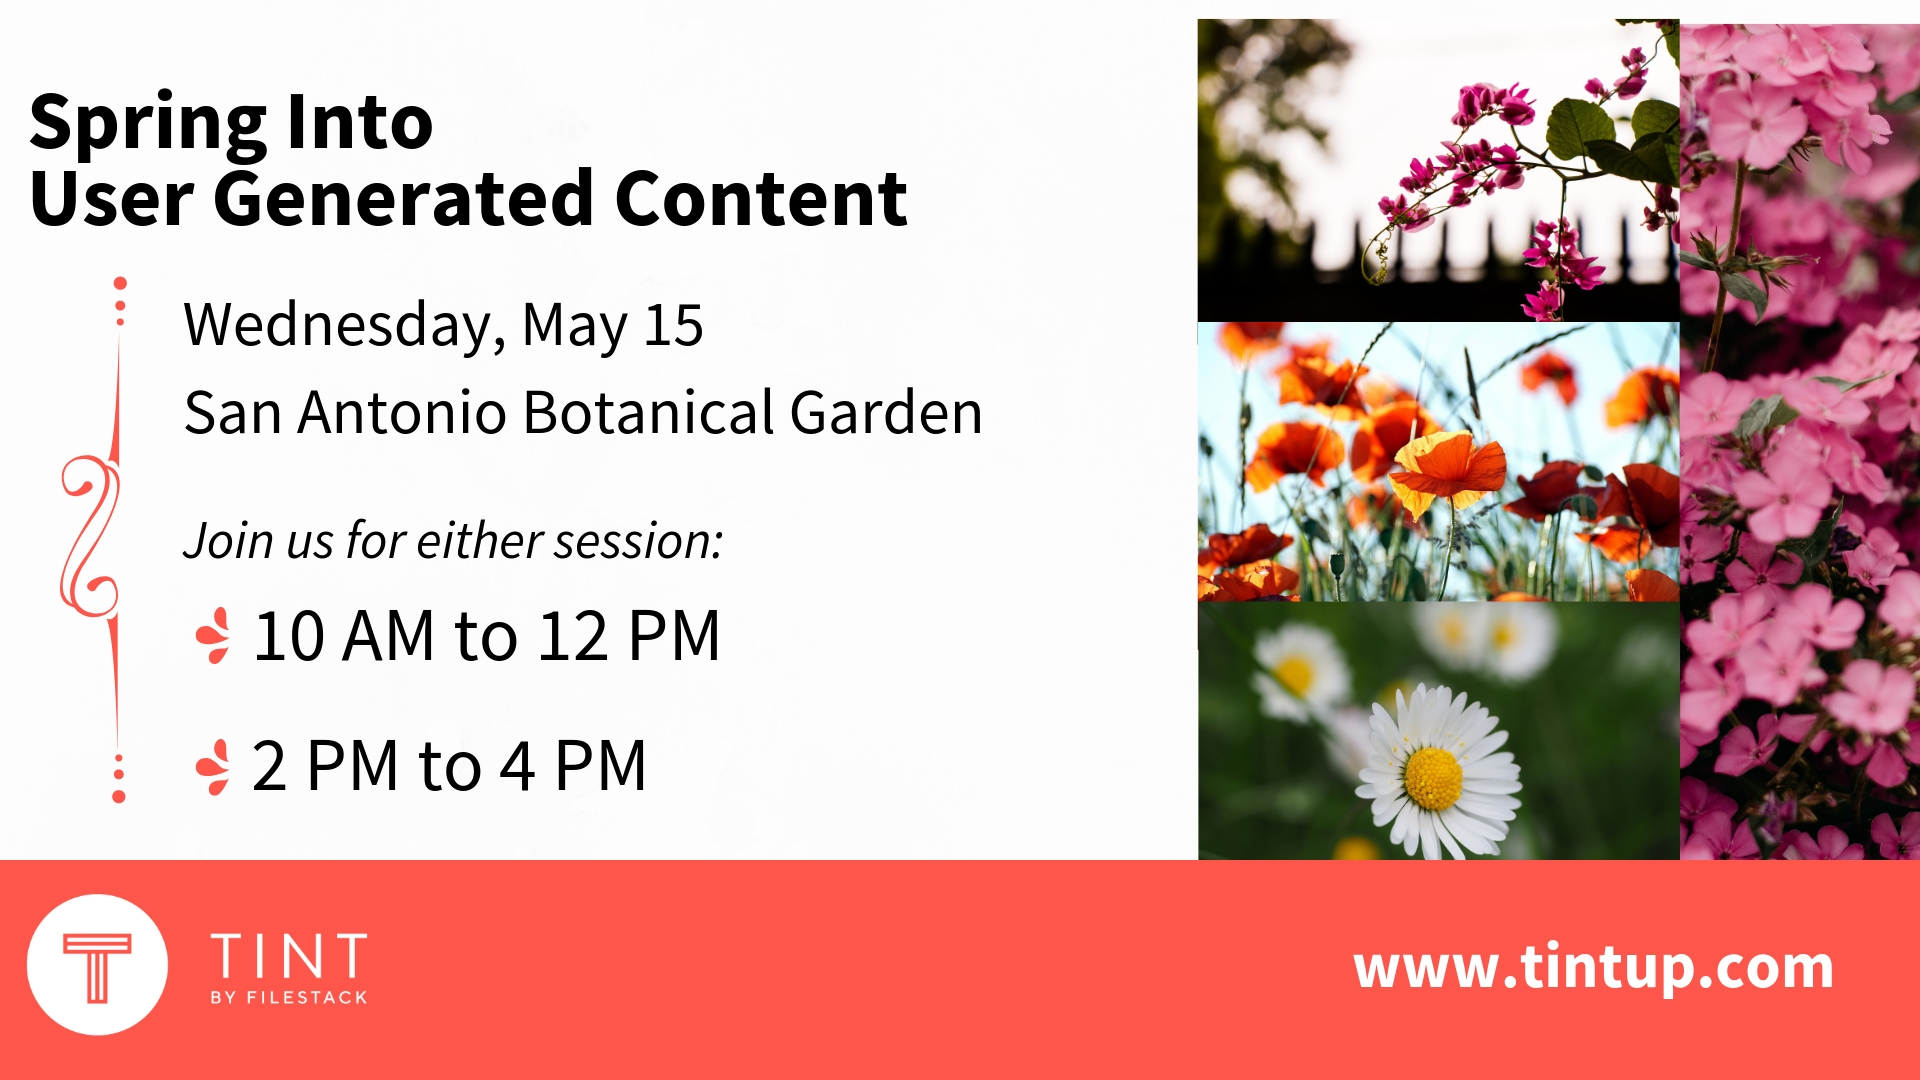 Spring Into User Generated Content Facebook Cover Tint Blog